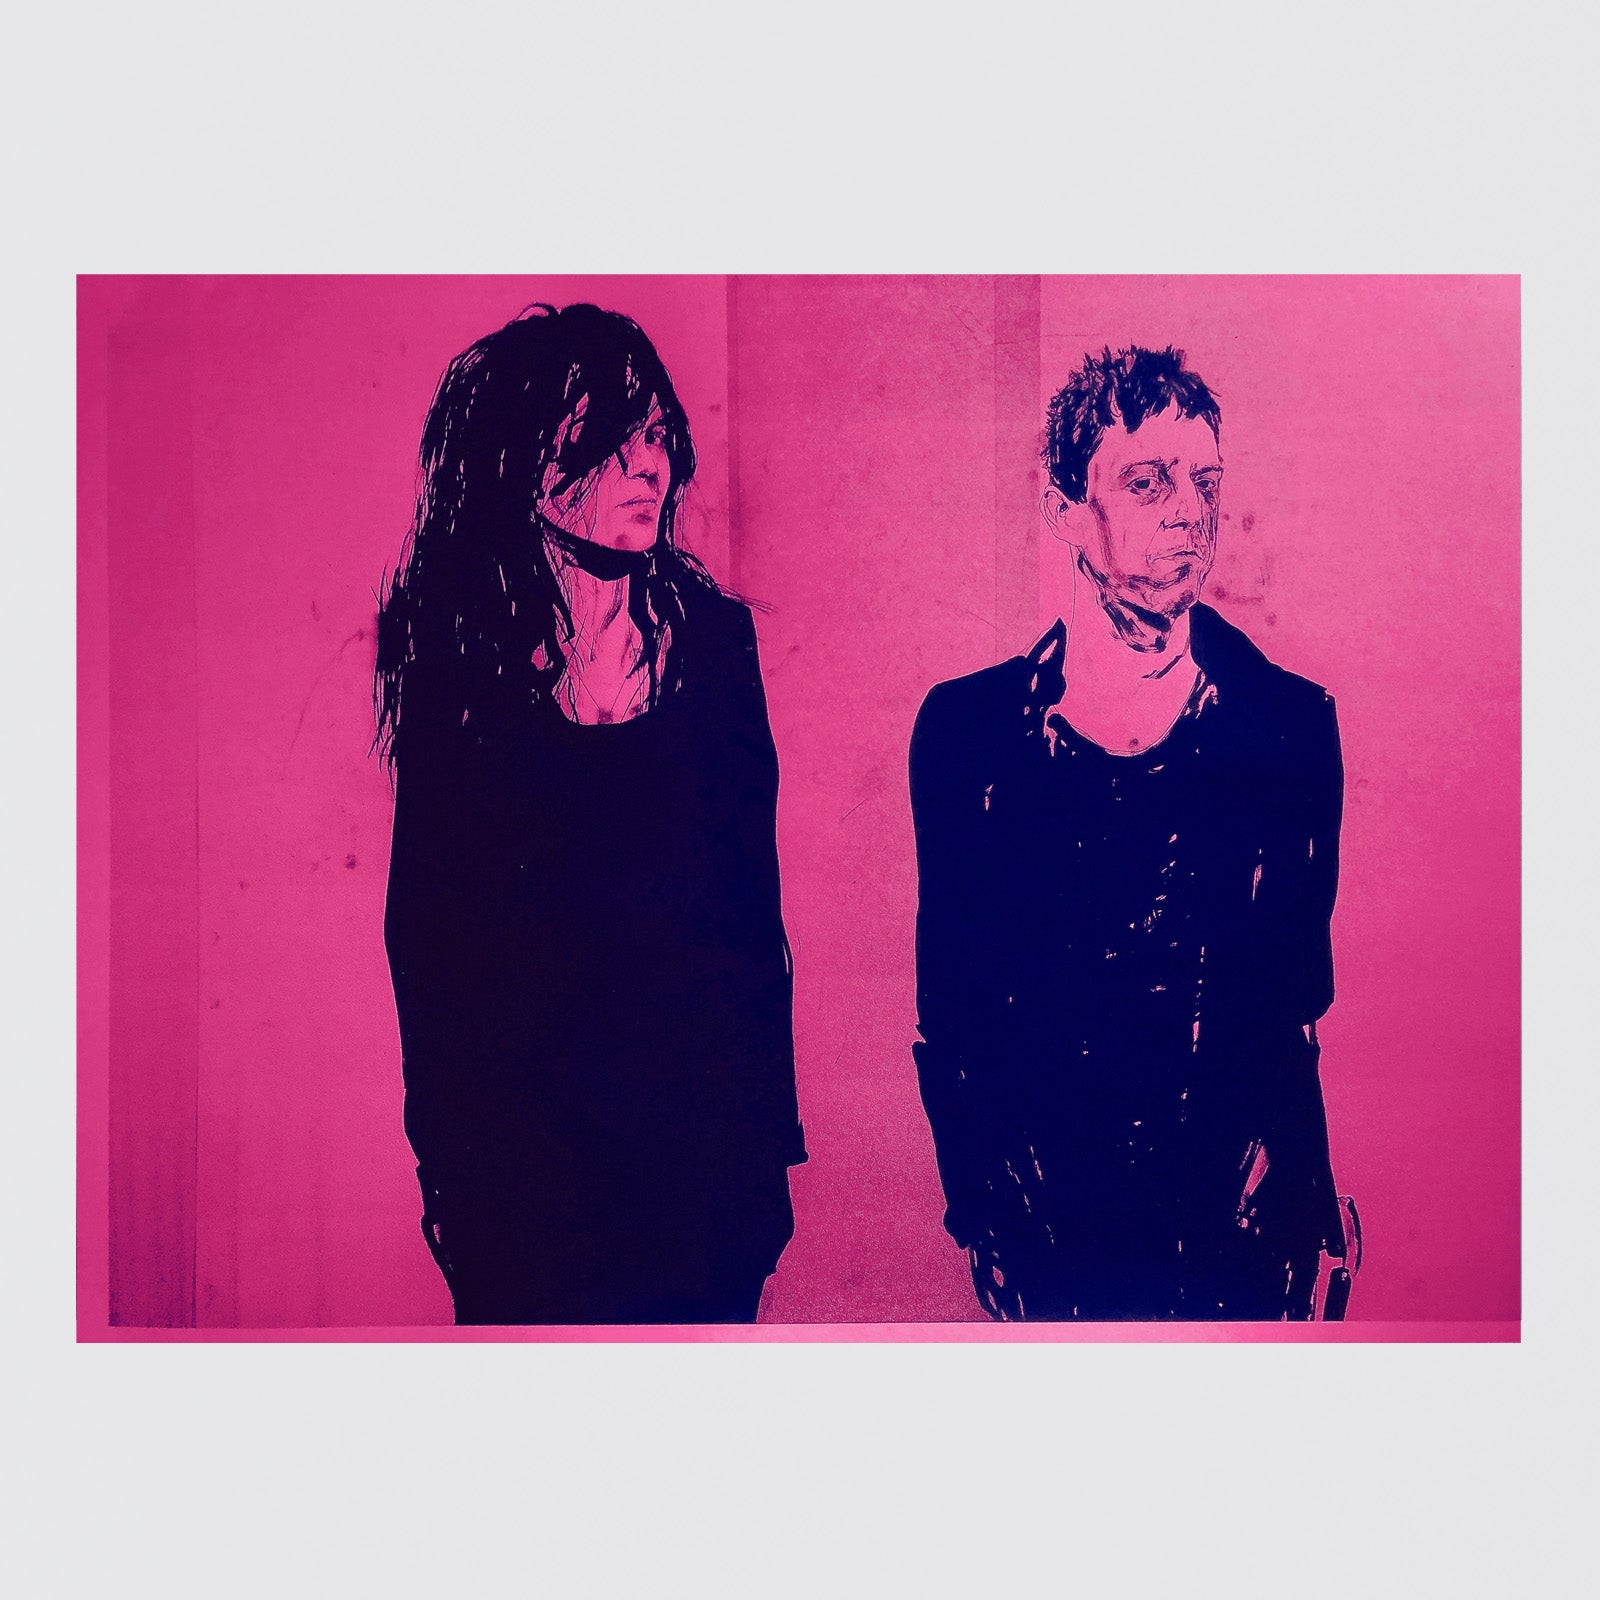 ROBERT KNOKE, ON PINK (THE KILLS) 2007 / 2018